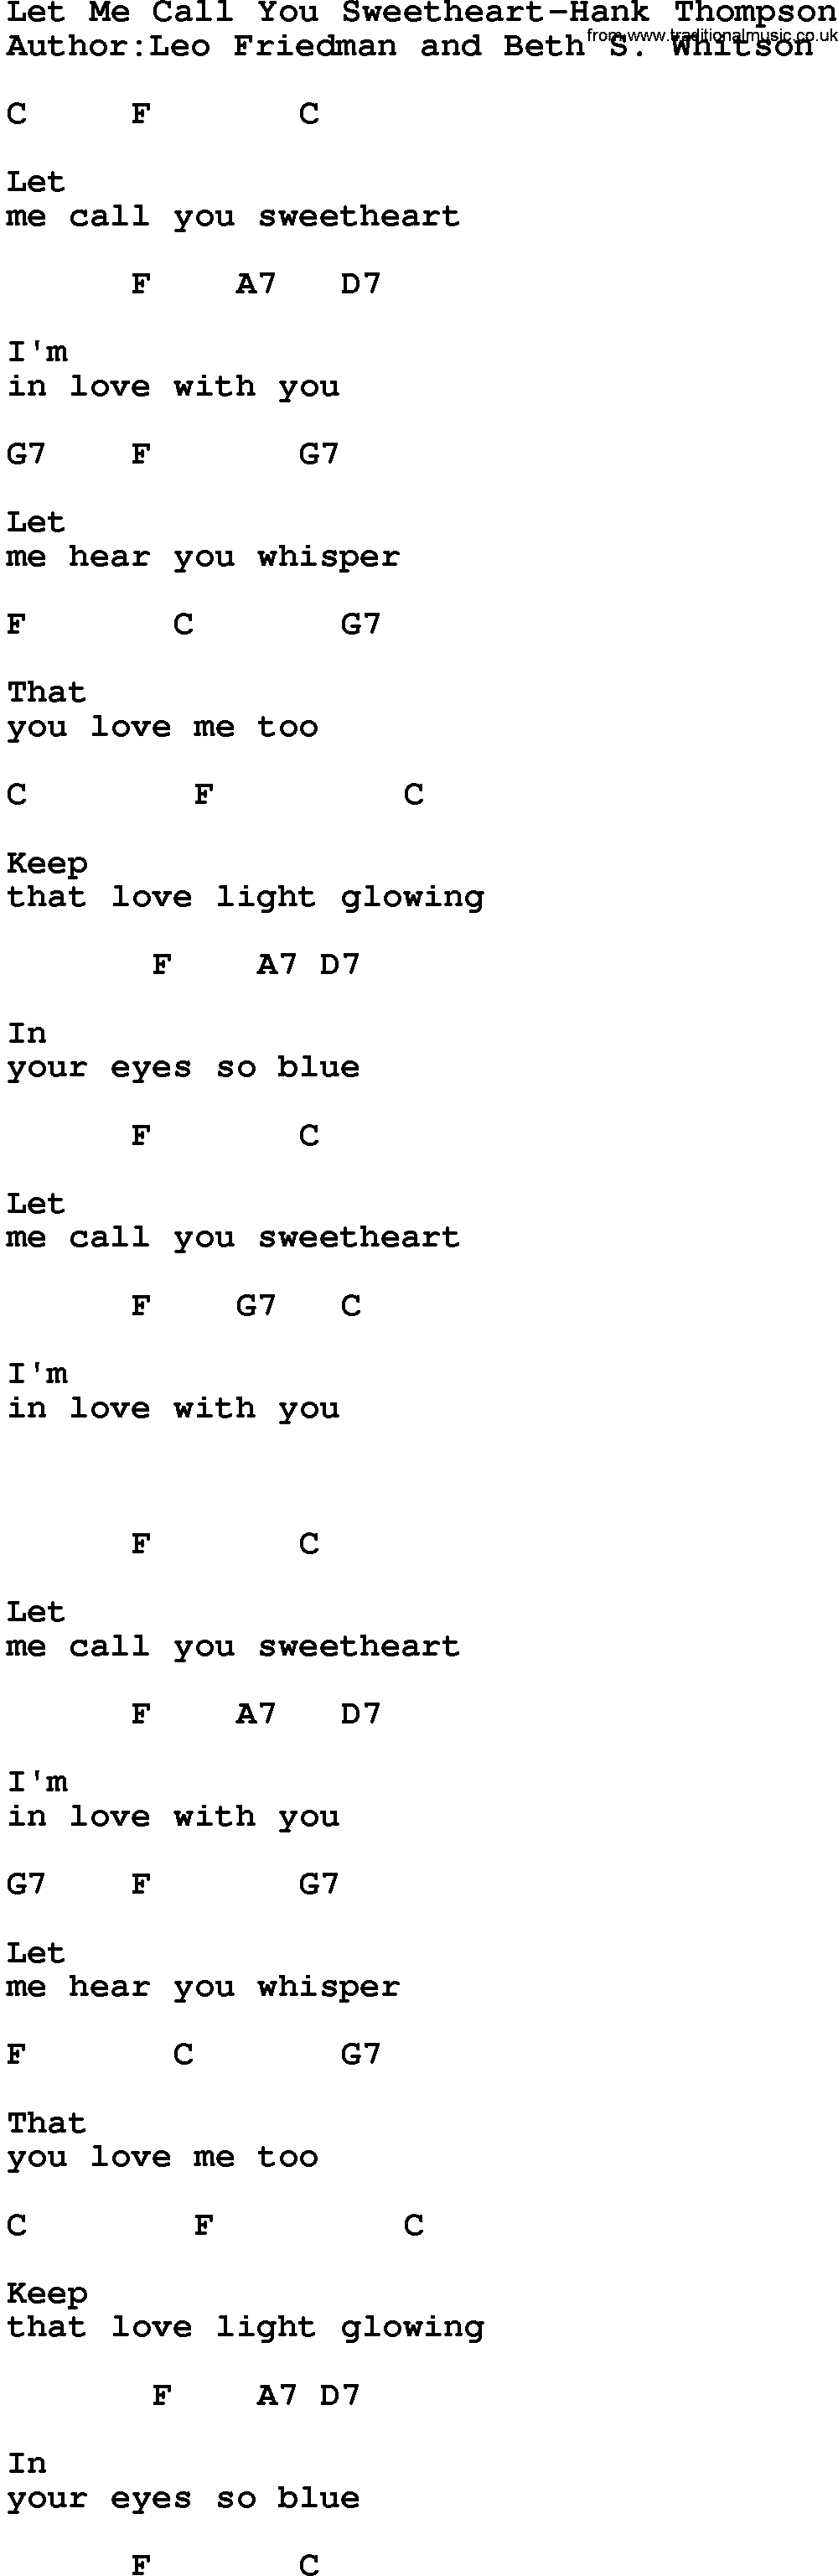 Country musiclet me call you sweetheart hank thompson lyrics and country musiclet me call you sweetheart hank thompson lyrics and chords hexwebz Images